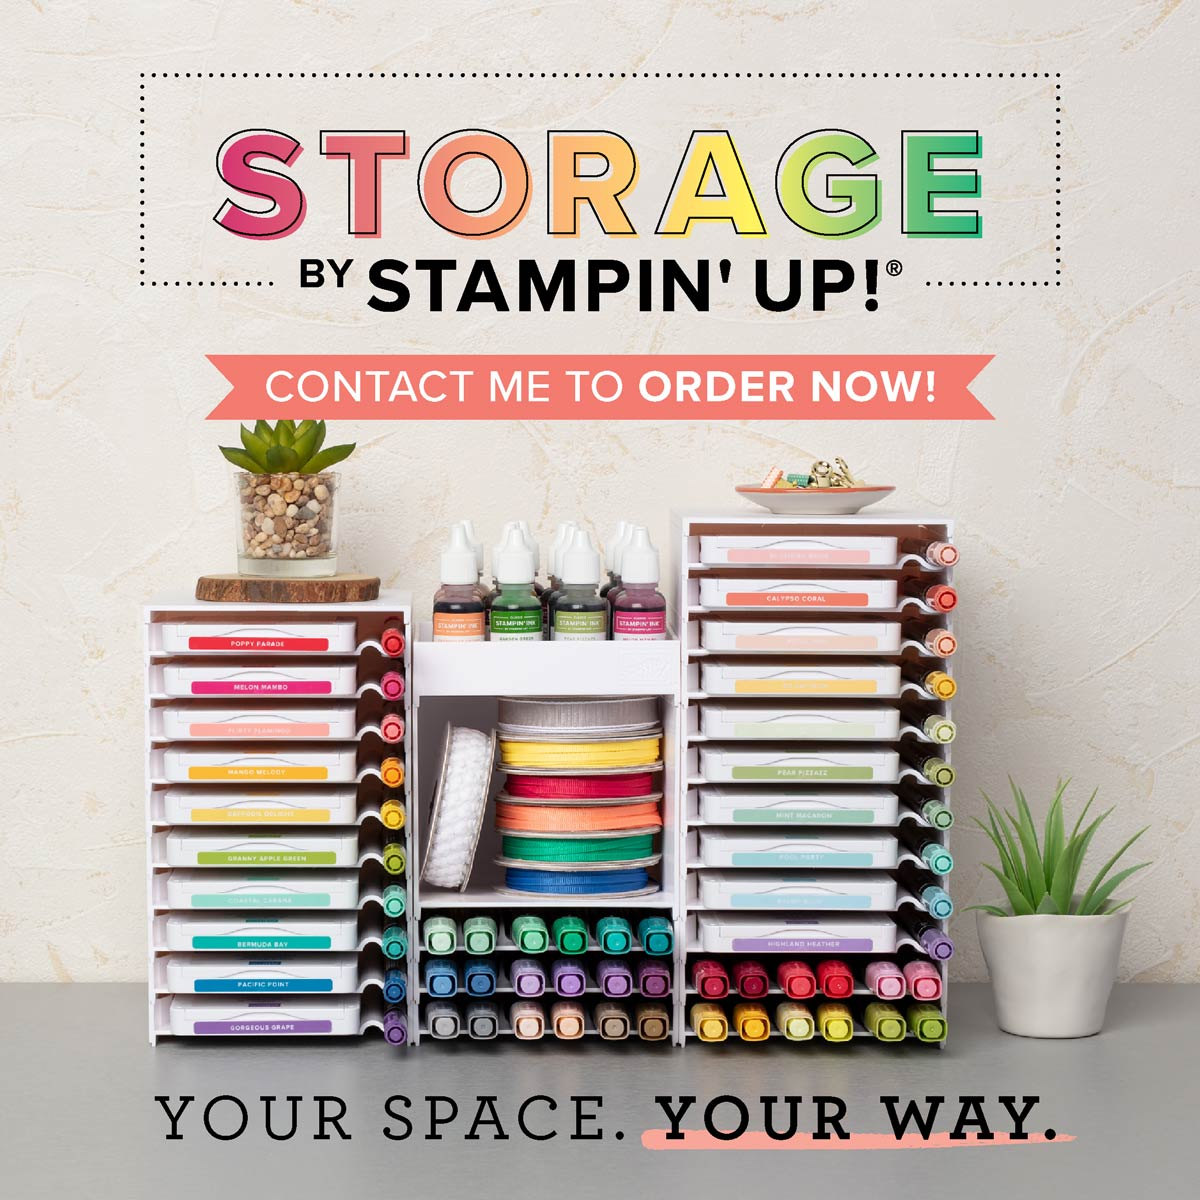 STORAGE_BY_STAMPIN_UP